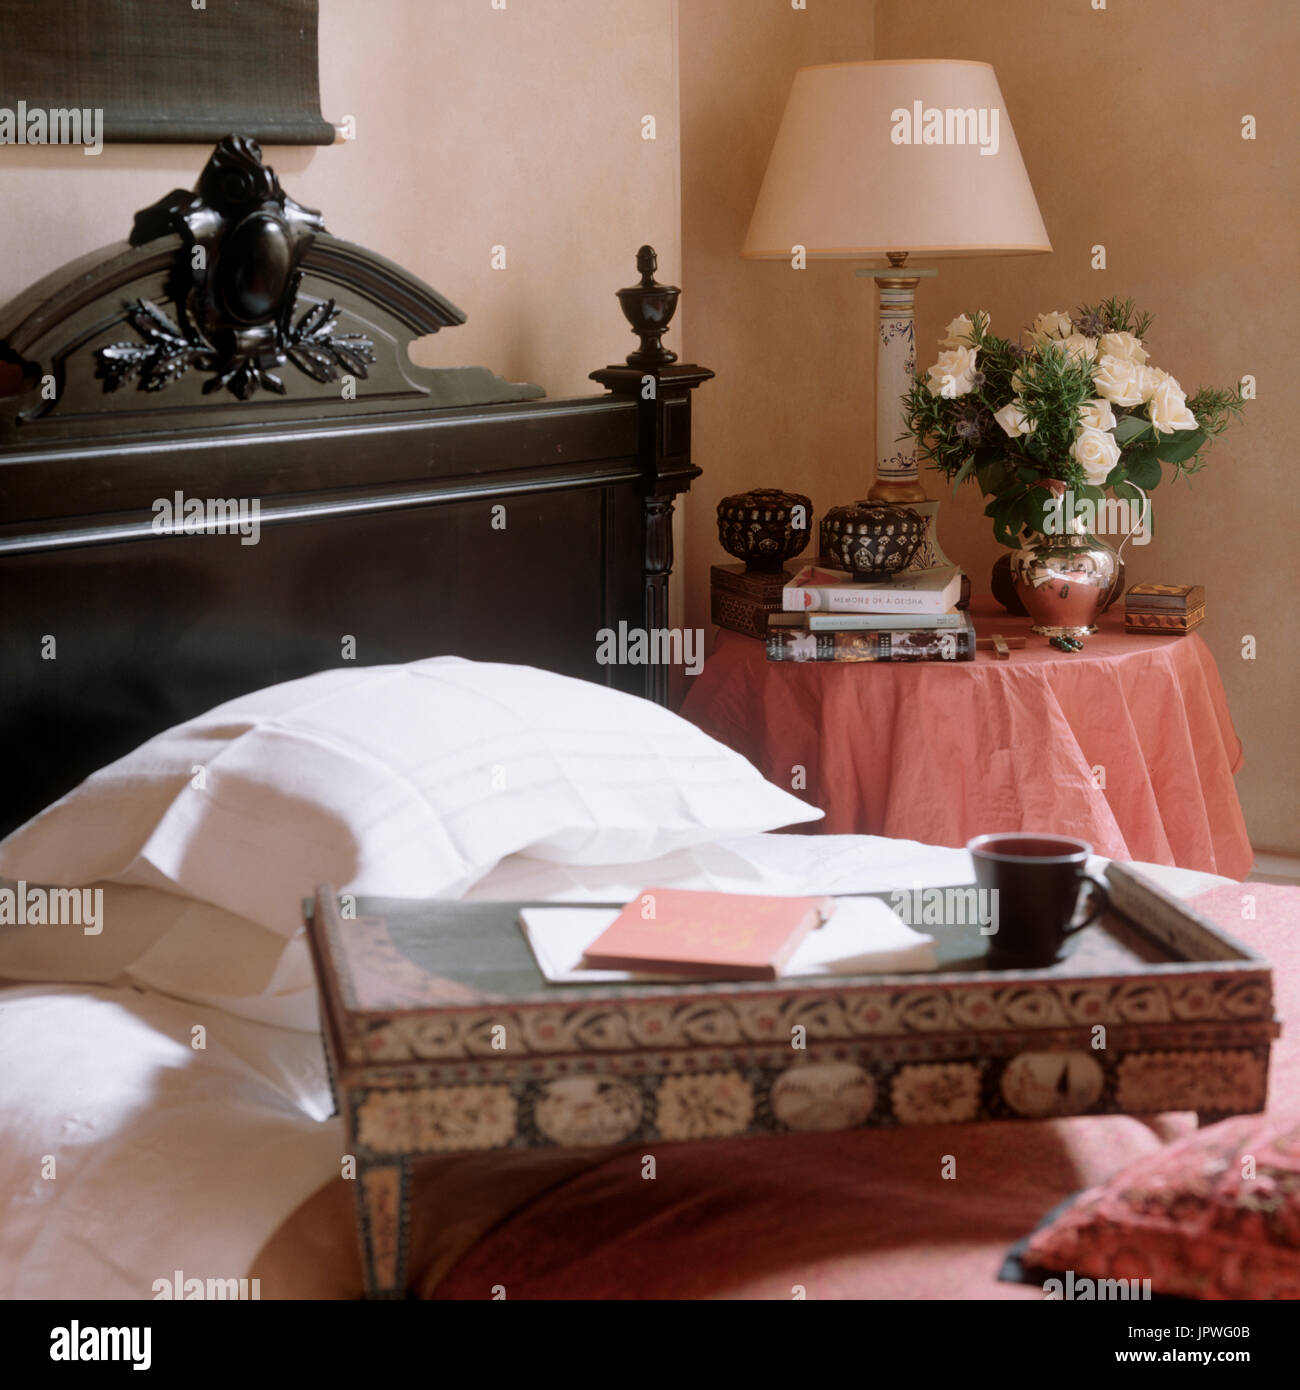 Tray on bed - Stock Image